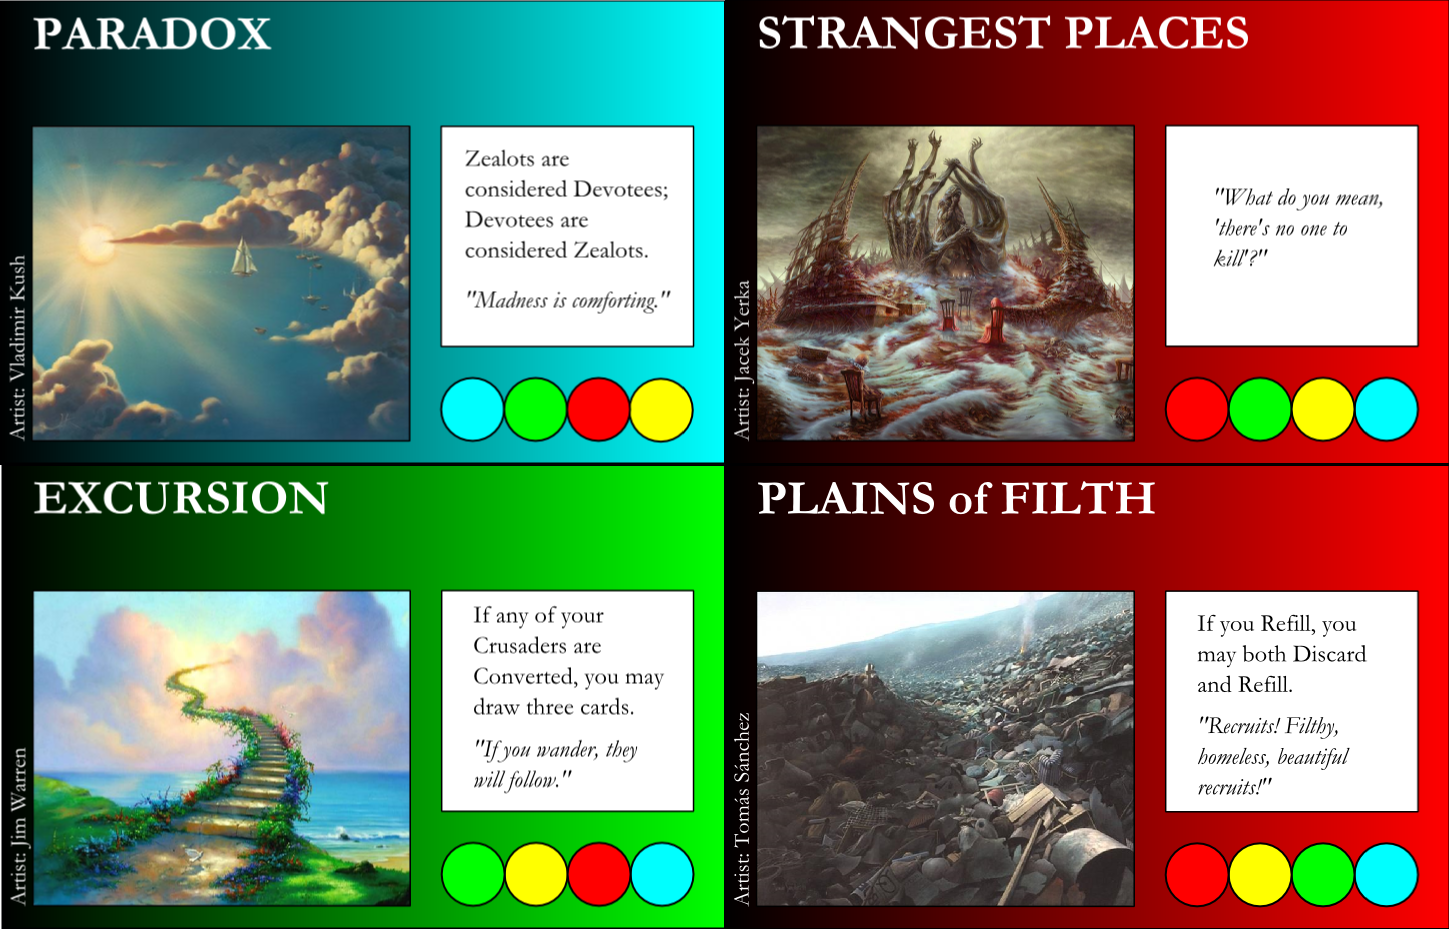 Fixed Paradox, Excursion, and Plains of Filth. Strangest Places just gets new art.